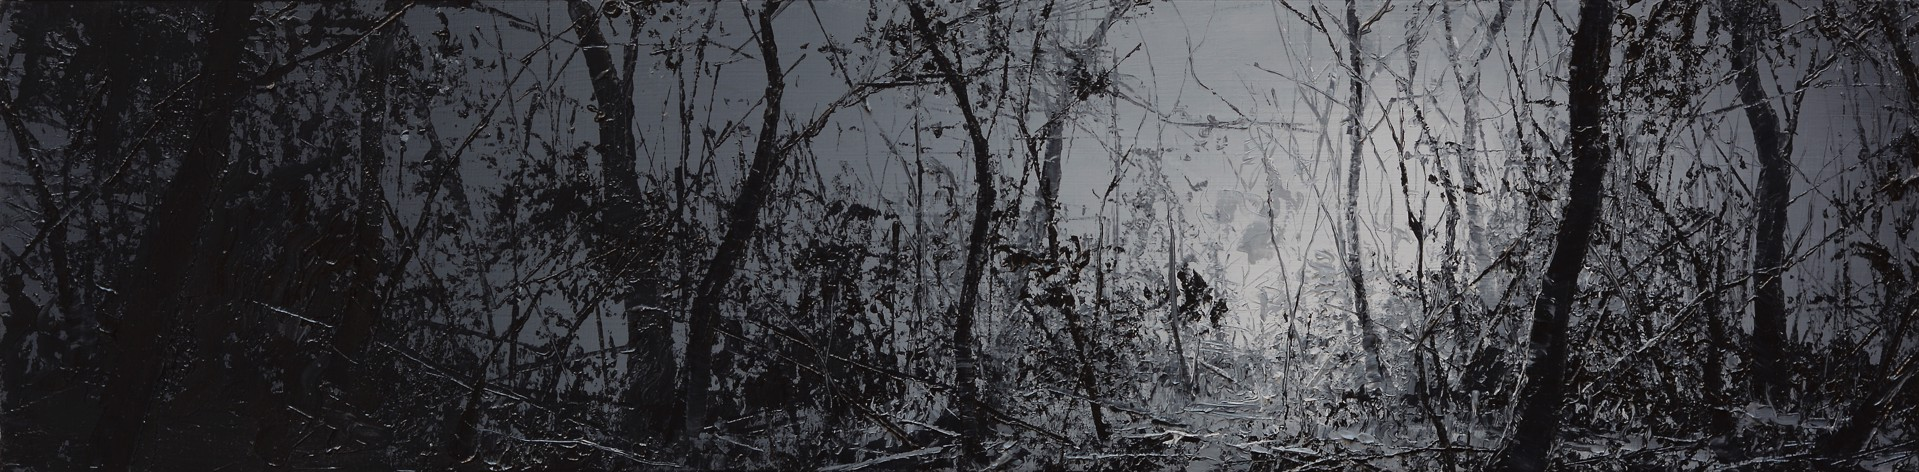 The Forest Mocks the Torment of the Trees by Todd Carpenter